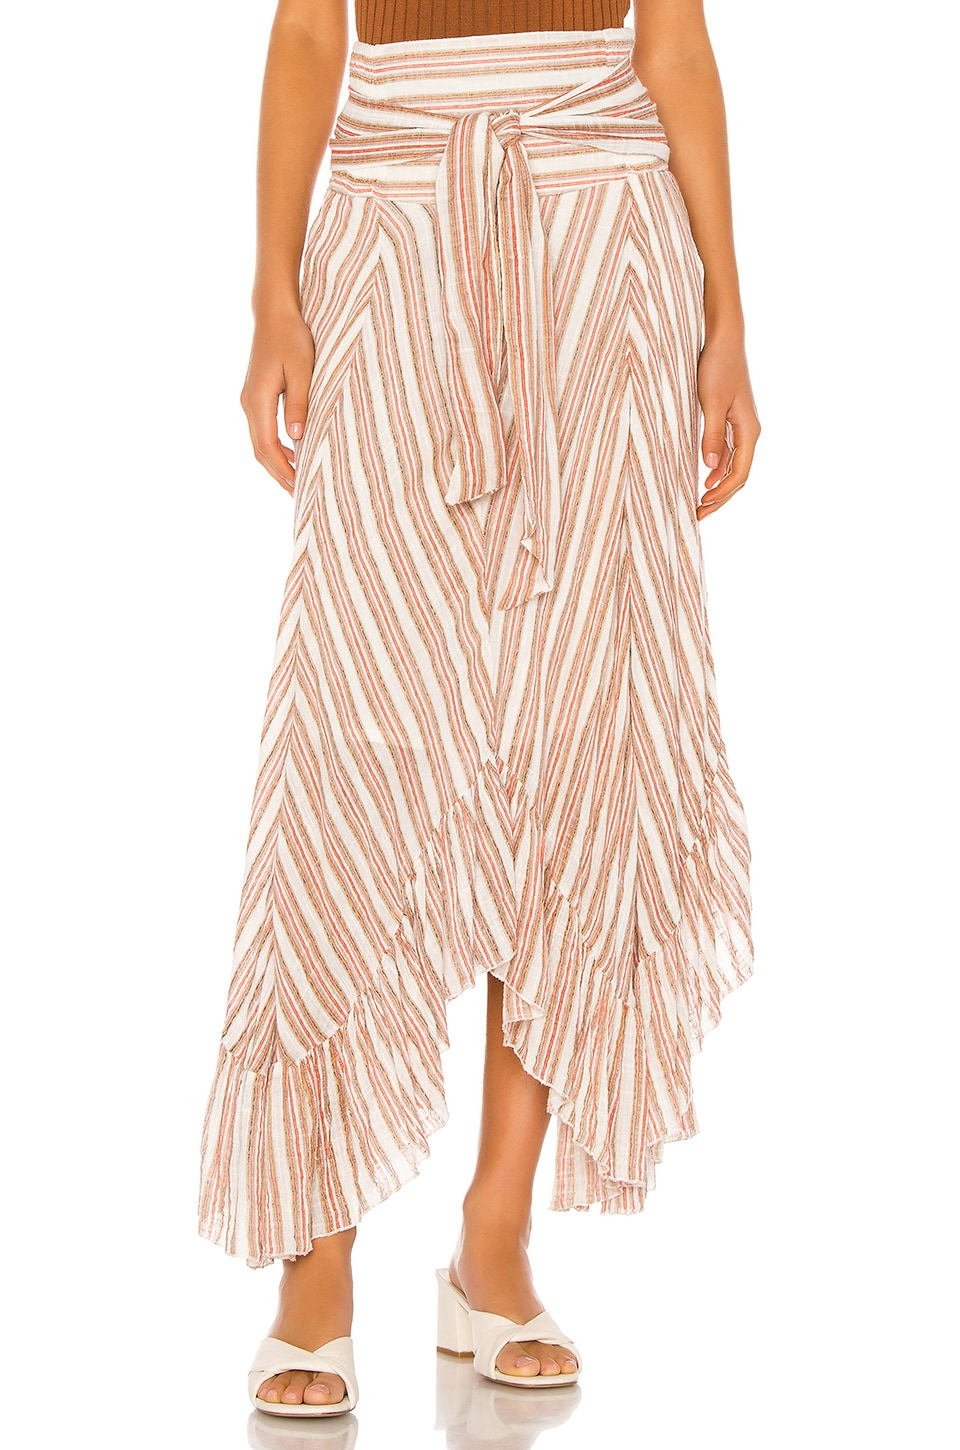 Free People Giselle Skirt in Ivory